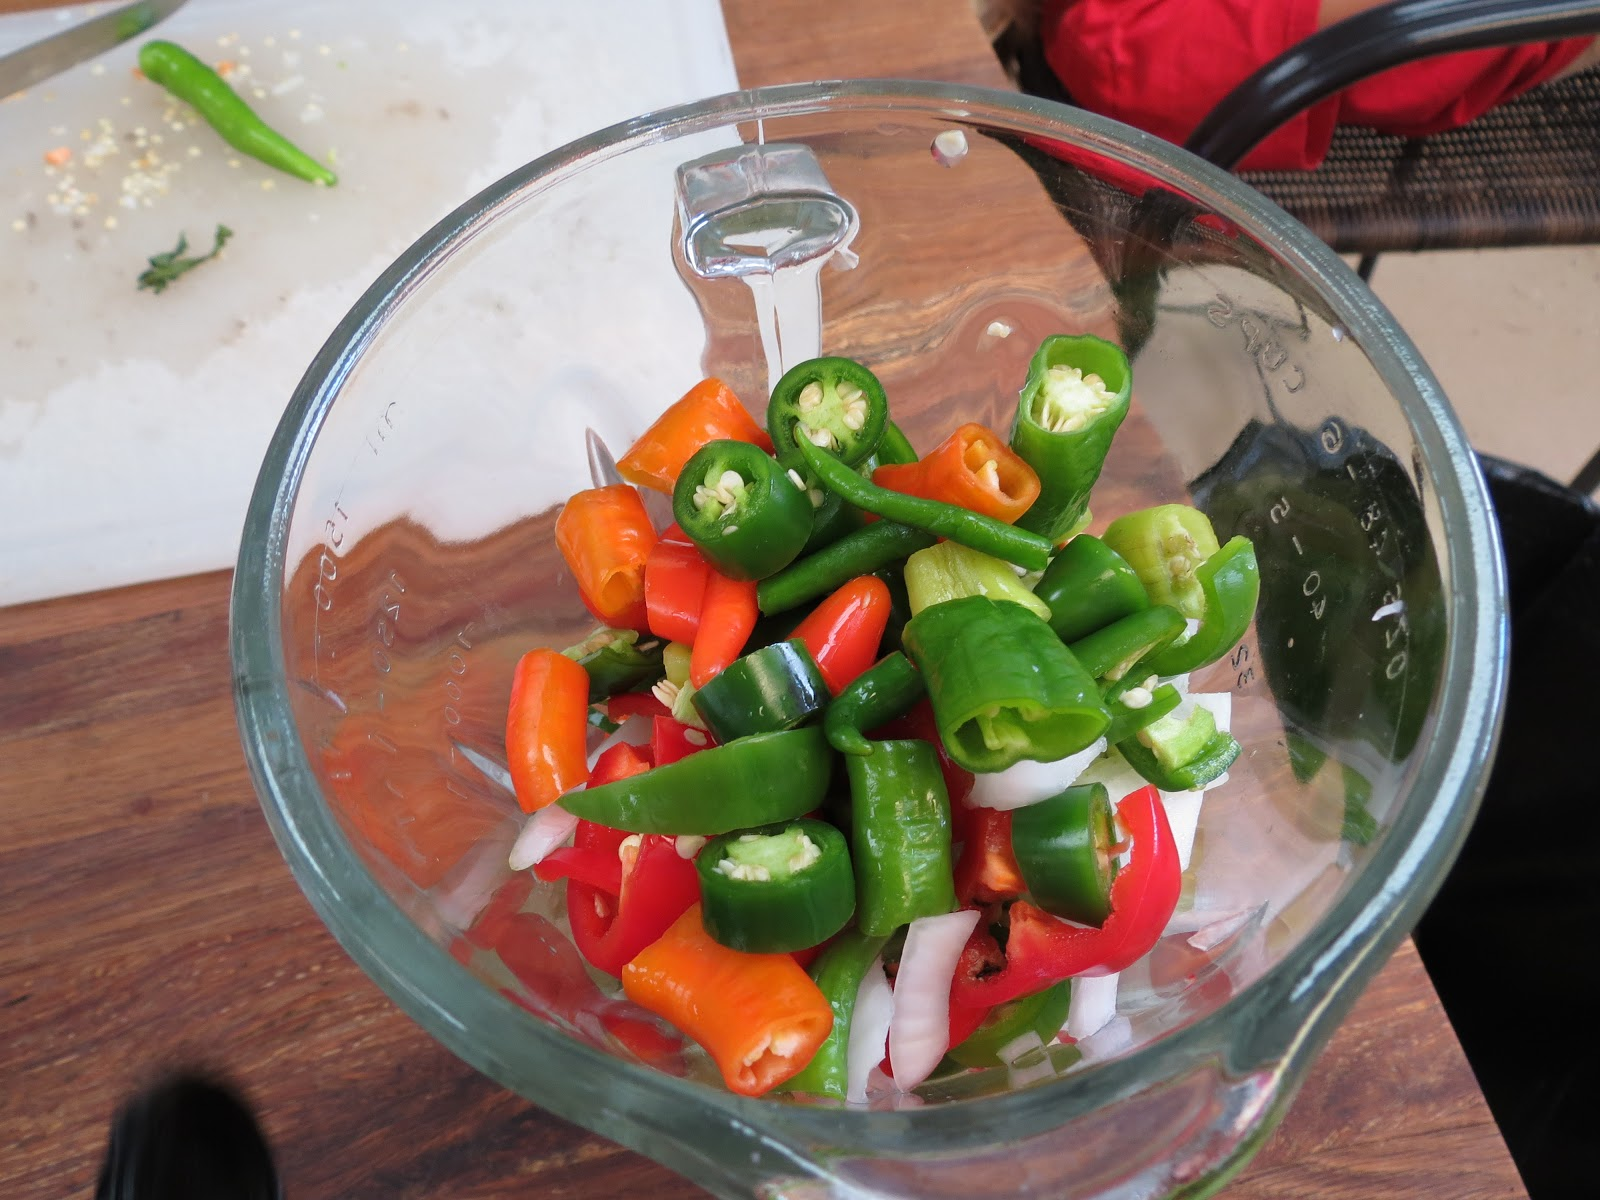 ... relish, then use sweeter peppers, we like hot relish so I used a lot